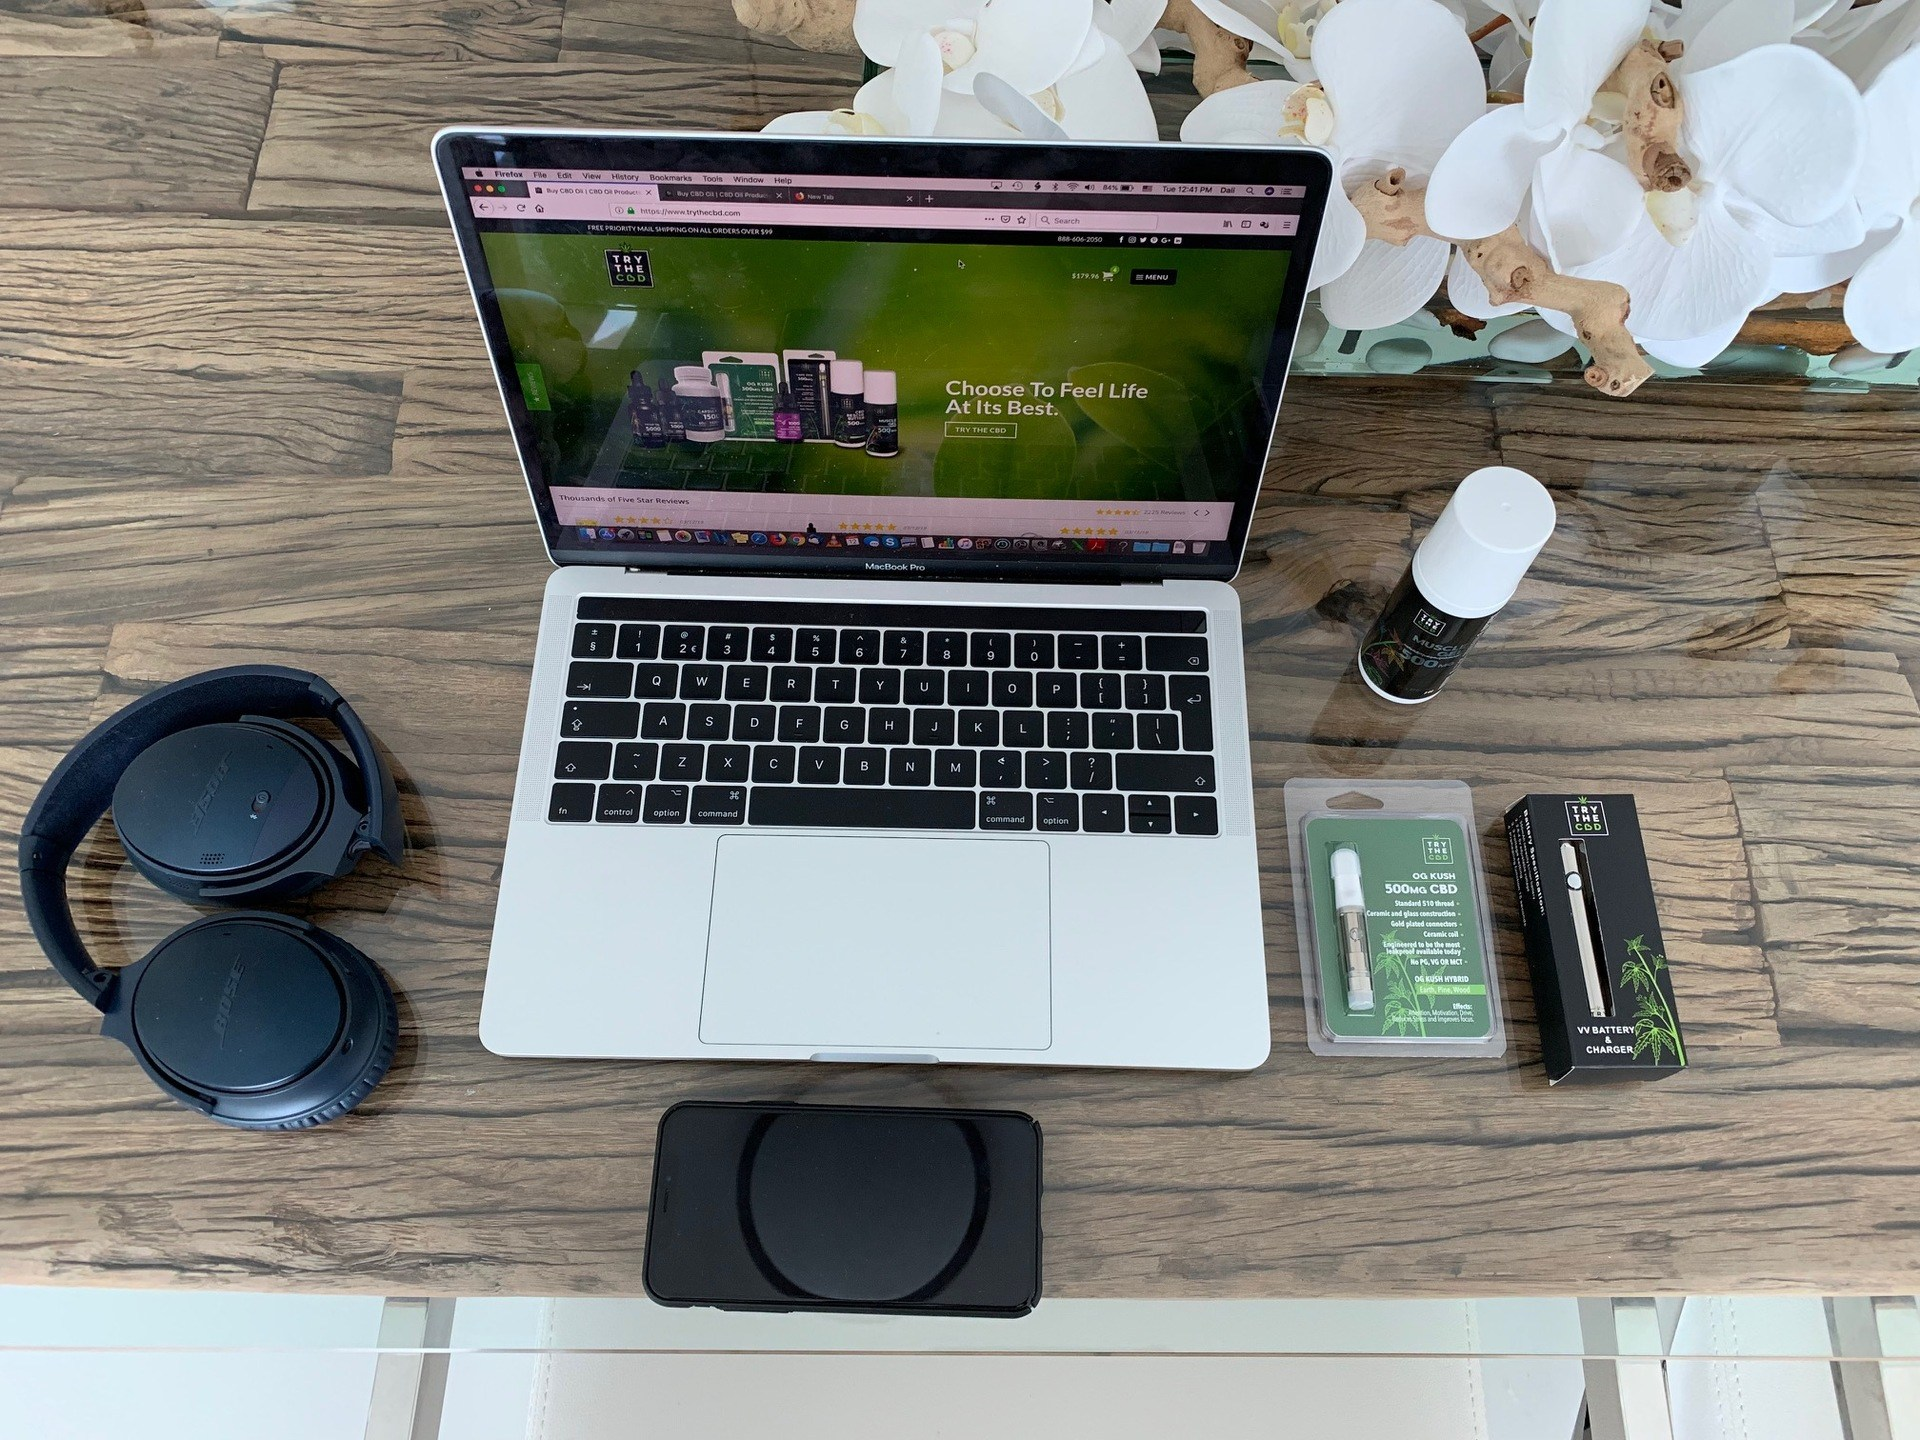 TryTheCBD Vape Cartridges combine CBD isolate with plant-based terpenes in a special carrier fluid free of common irritants, for smooth delicious vaping. Photo: TryTheCBD Vape Cartridges and other TryTheCBD products posedaround a laptop on a wooden desk, with headphones nearby.